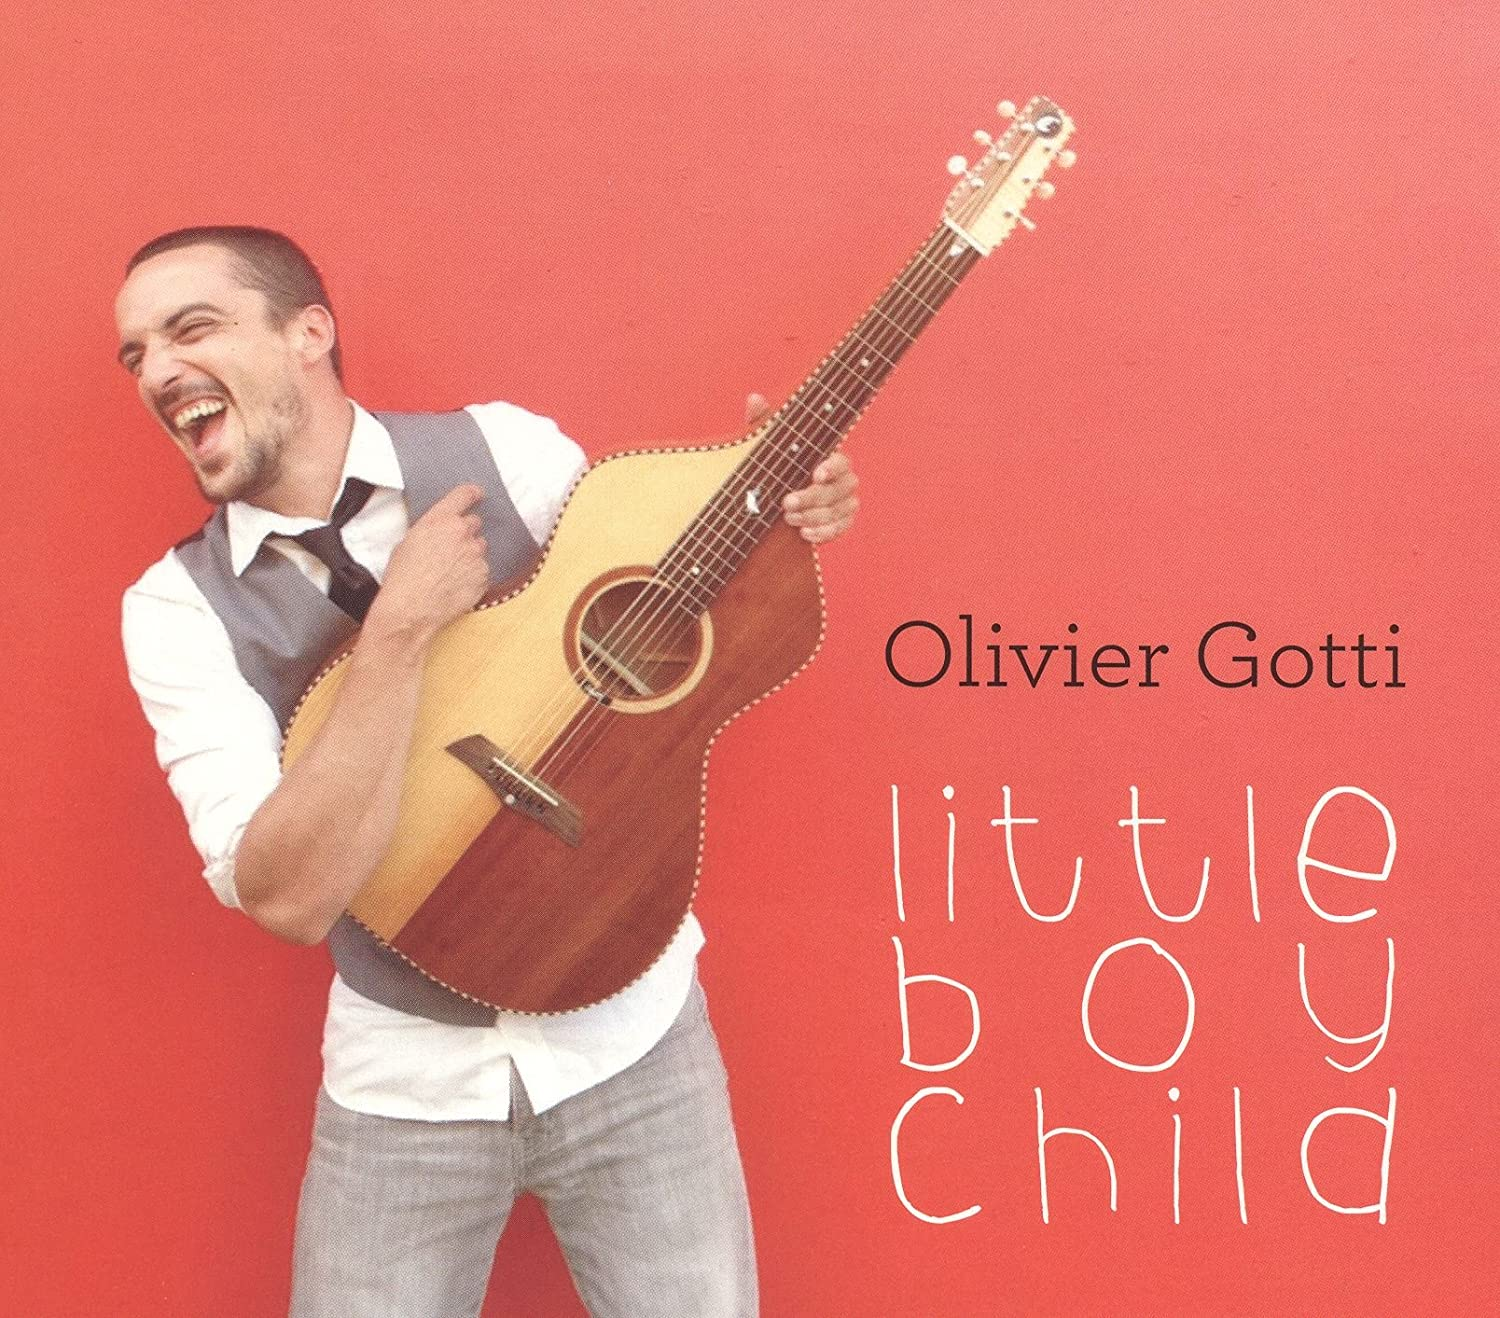 Olivier Gotti - Little Boy Child 91A7cxa6pwL._SL1500_